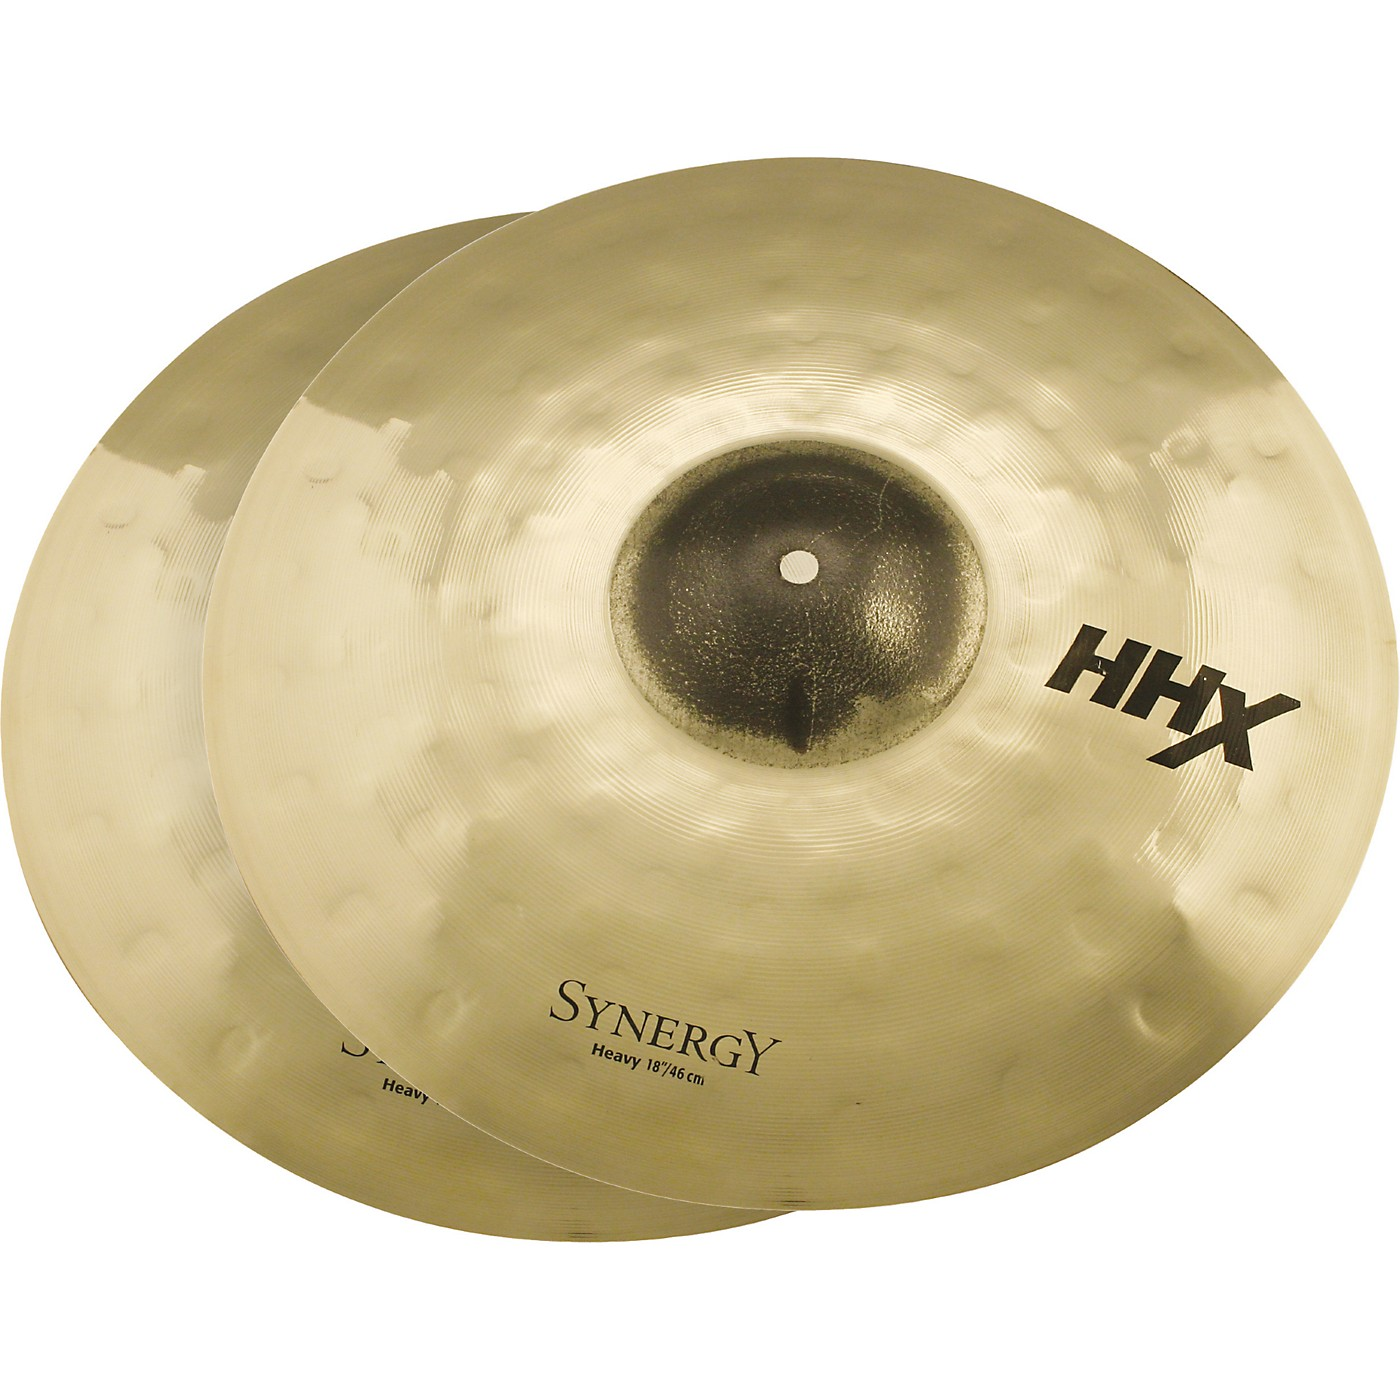 Sabian HHX Synergy Series Heavy Orchestral Cymbal Pair thumbnail